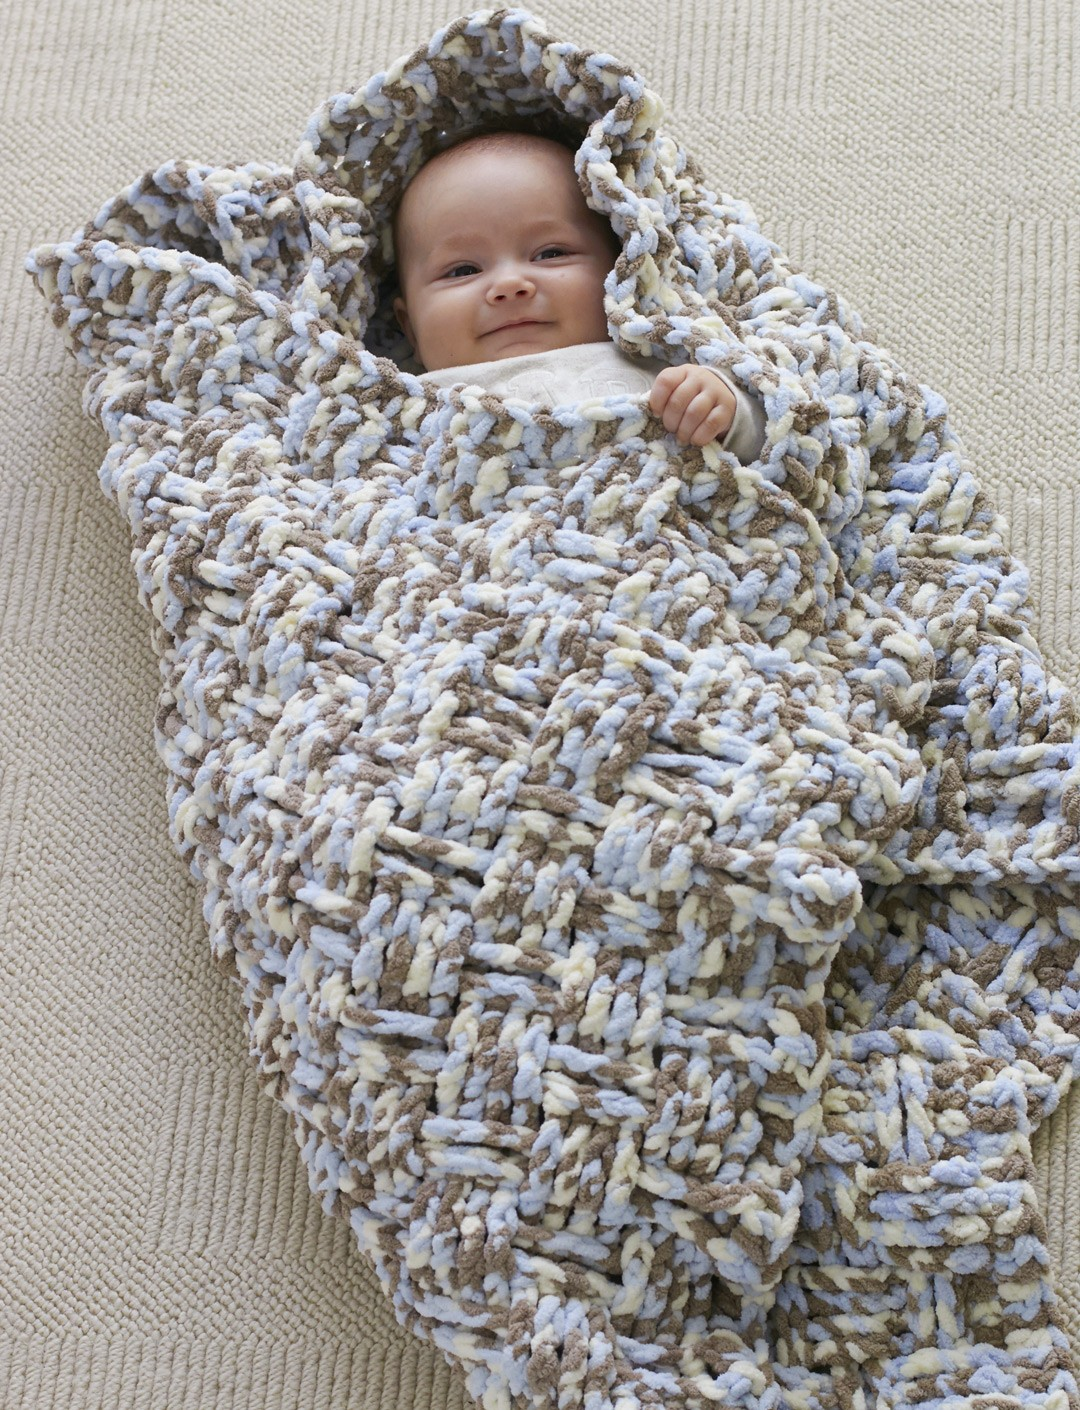 Crochet Patterns Using Bernat Blanket Yarn : Bernat Dream Weaver Blanket, Crochet Pattern Yarnspirations